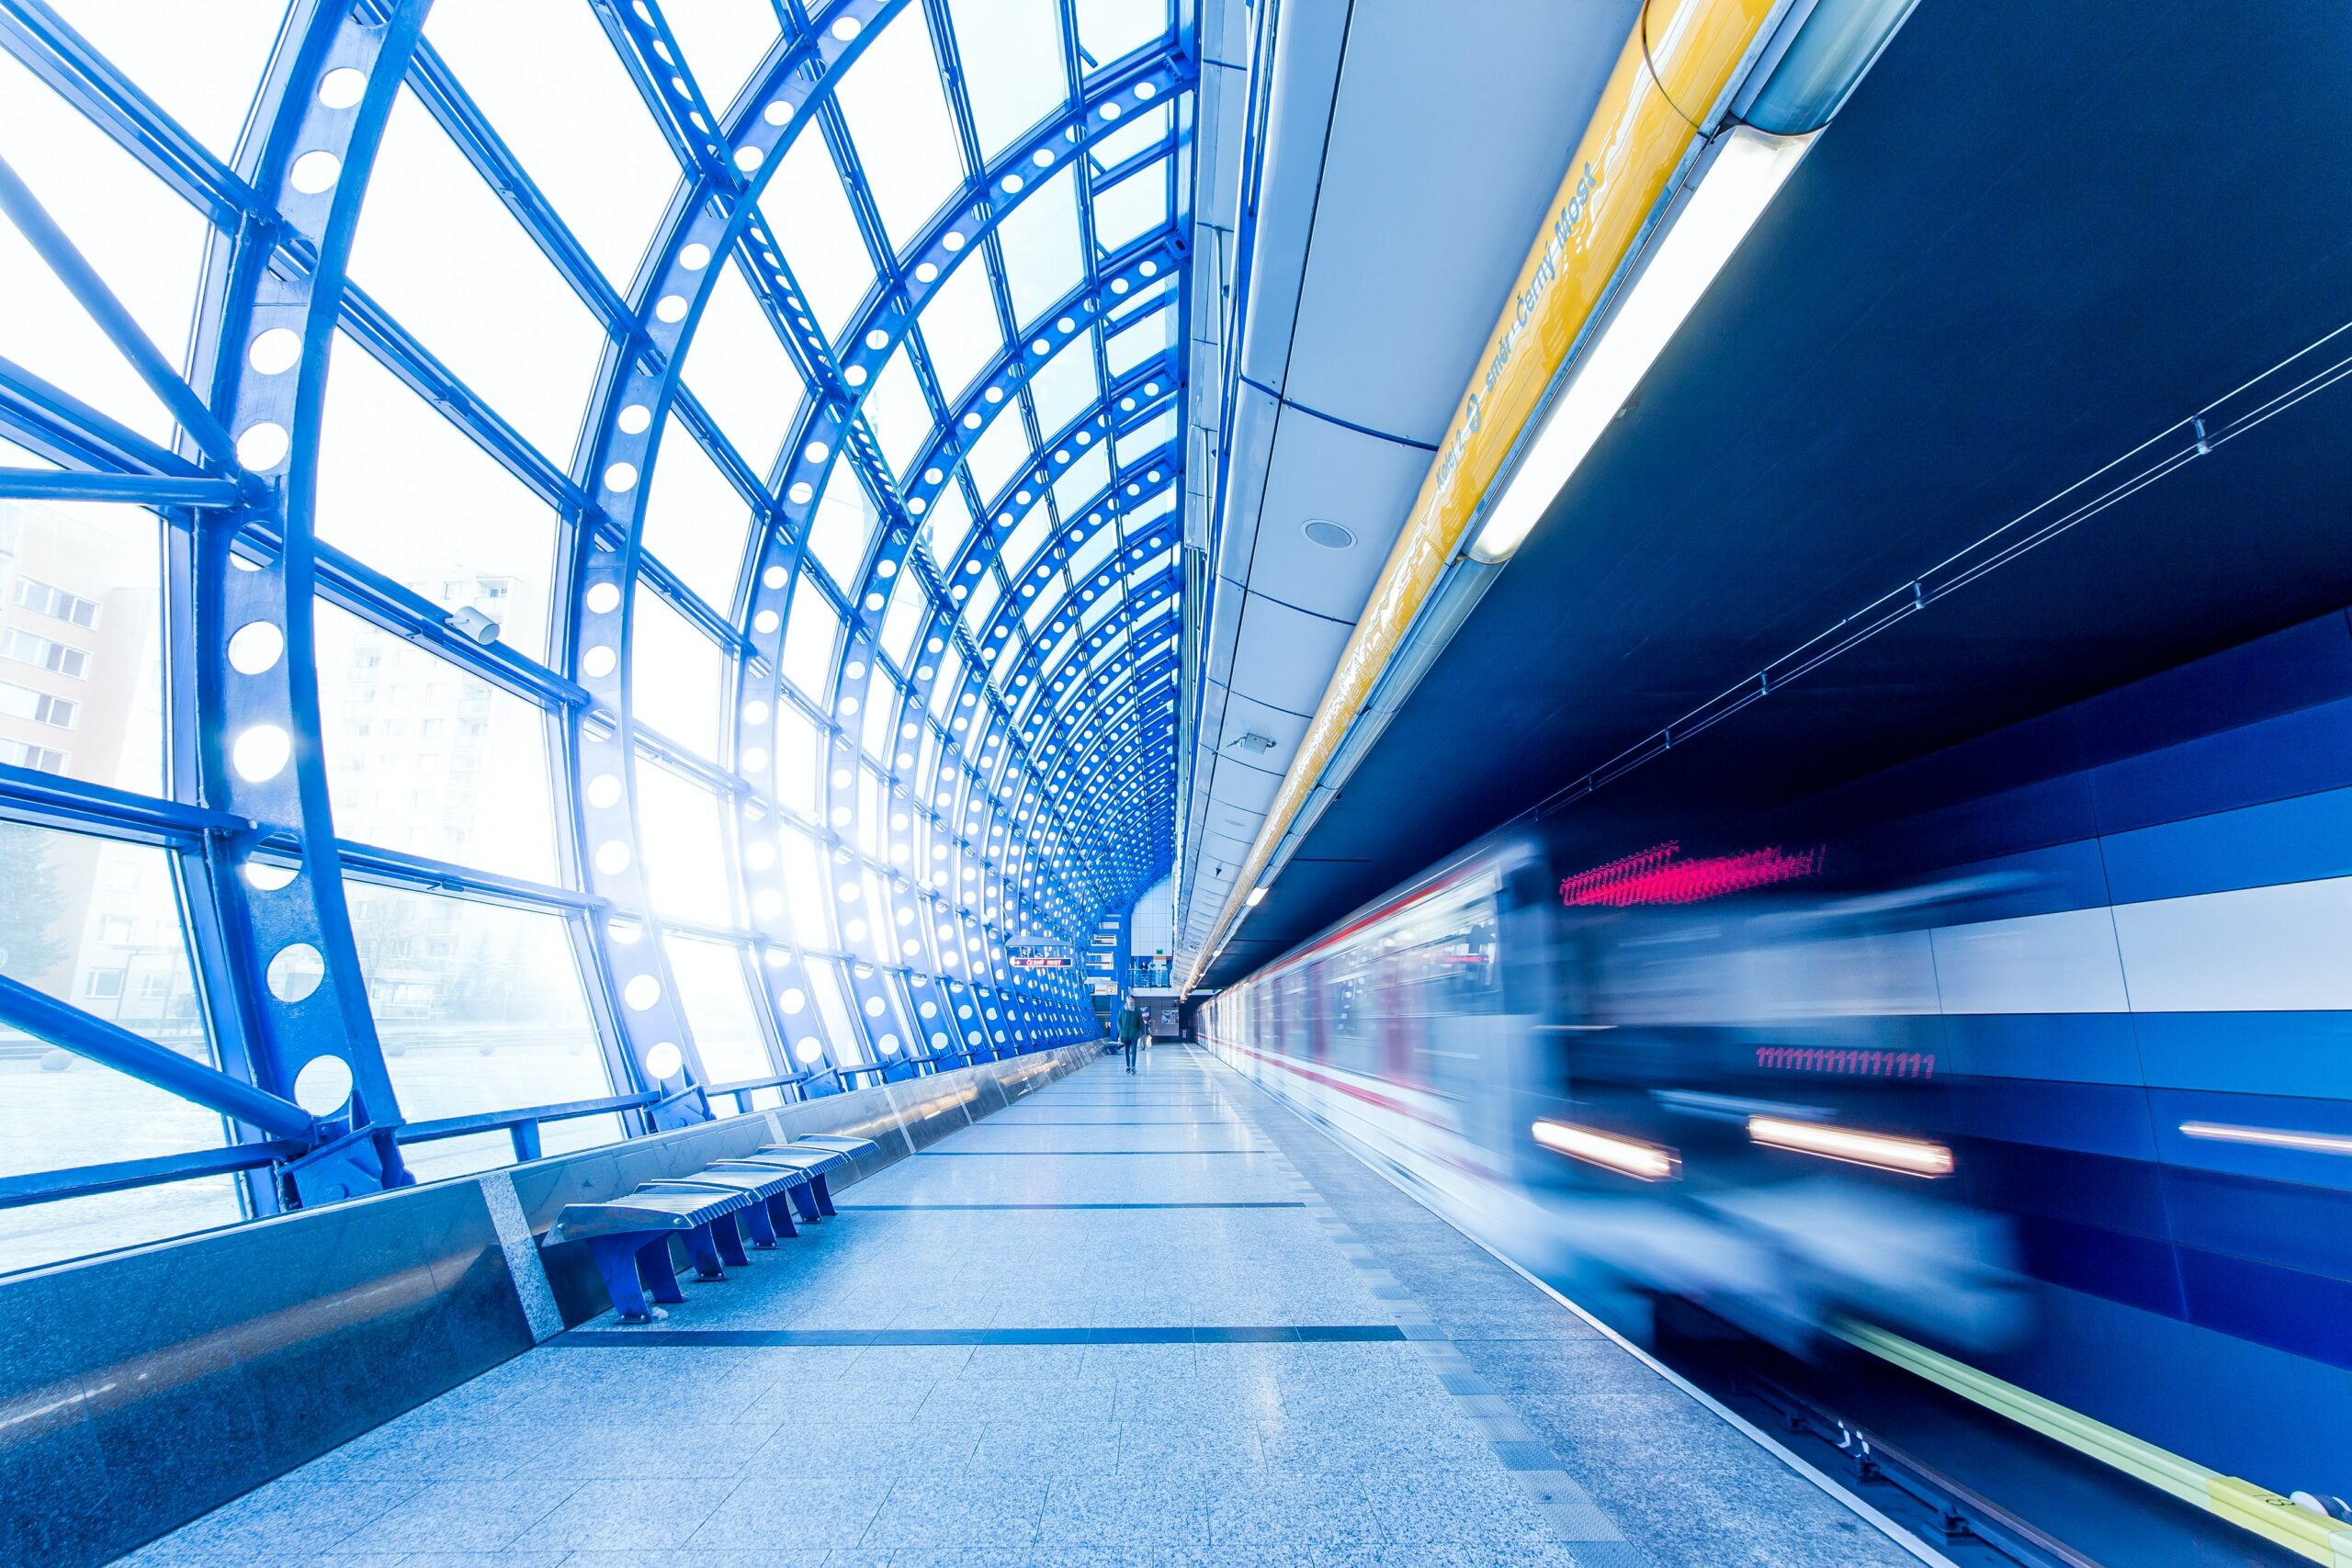 Industry first partnership aims for net-zero in transport